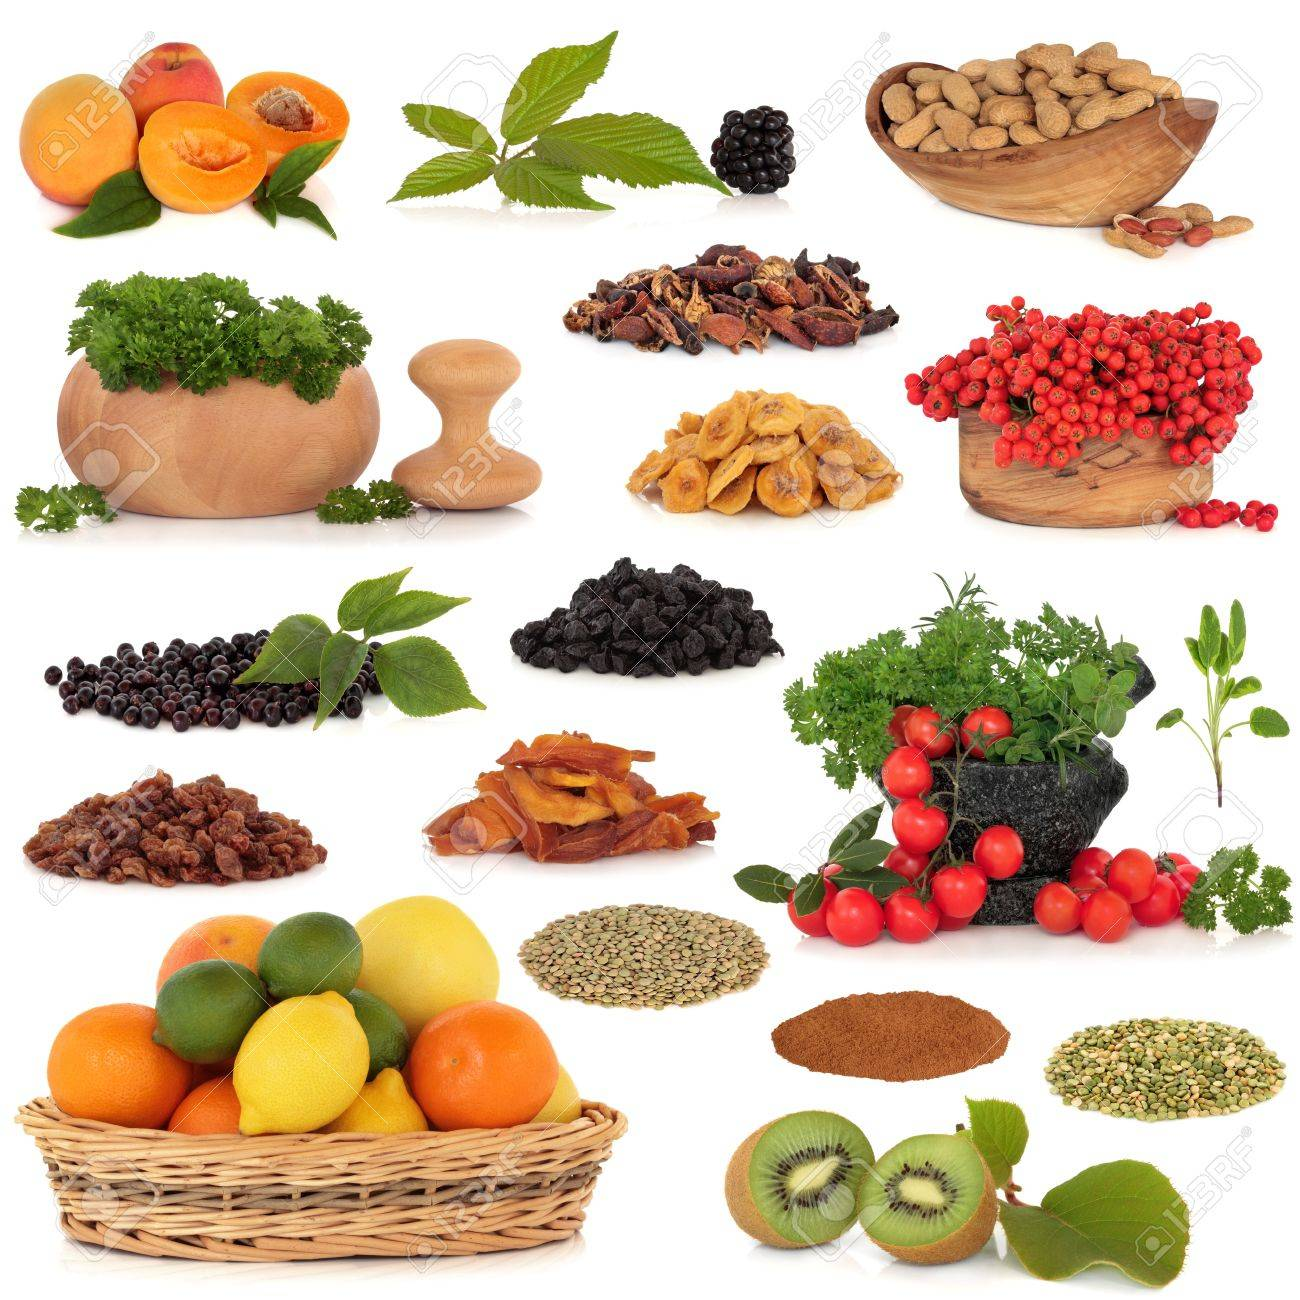 Healthy super food collection of fresh and dried fruit, nuts, herbs, spices, and pulses, very high in antioxidants and vitamins, isolated over white background. Stock Photo - 7103260